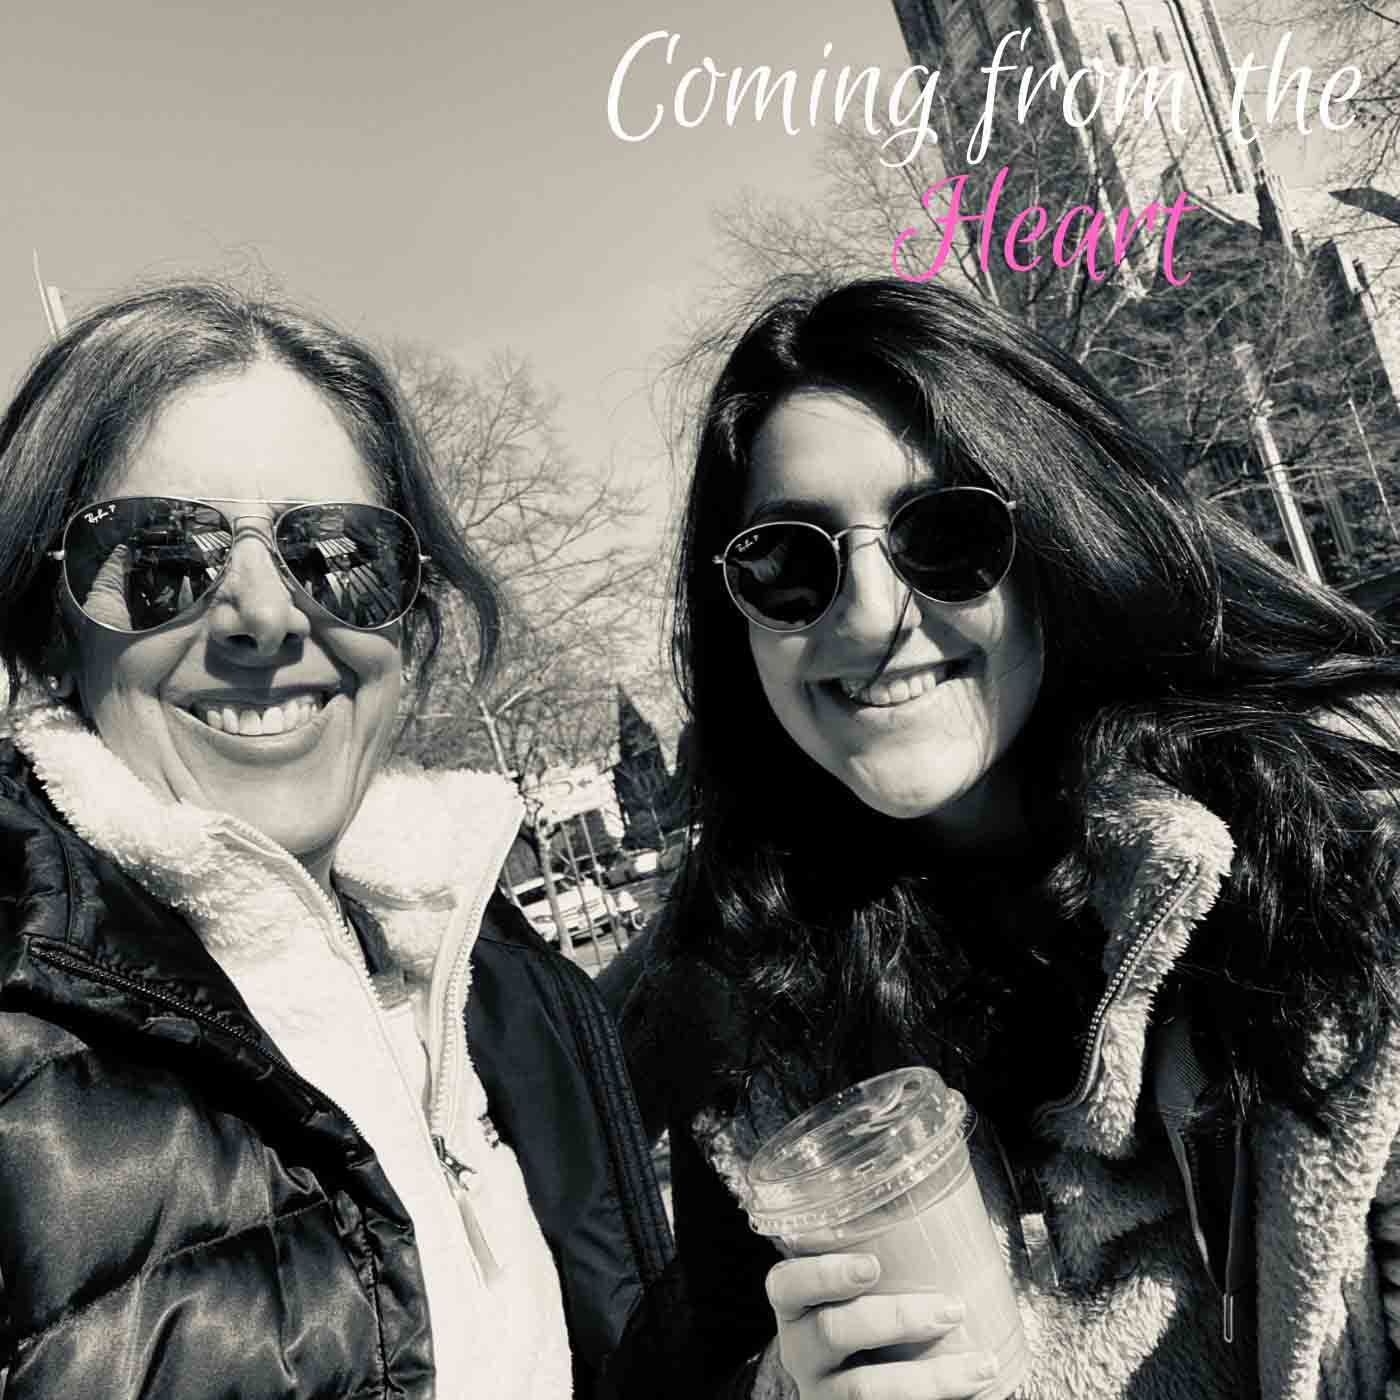 Mother-Daughter podcast hosts for Coming from the Heart podcast smile for the camera